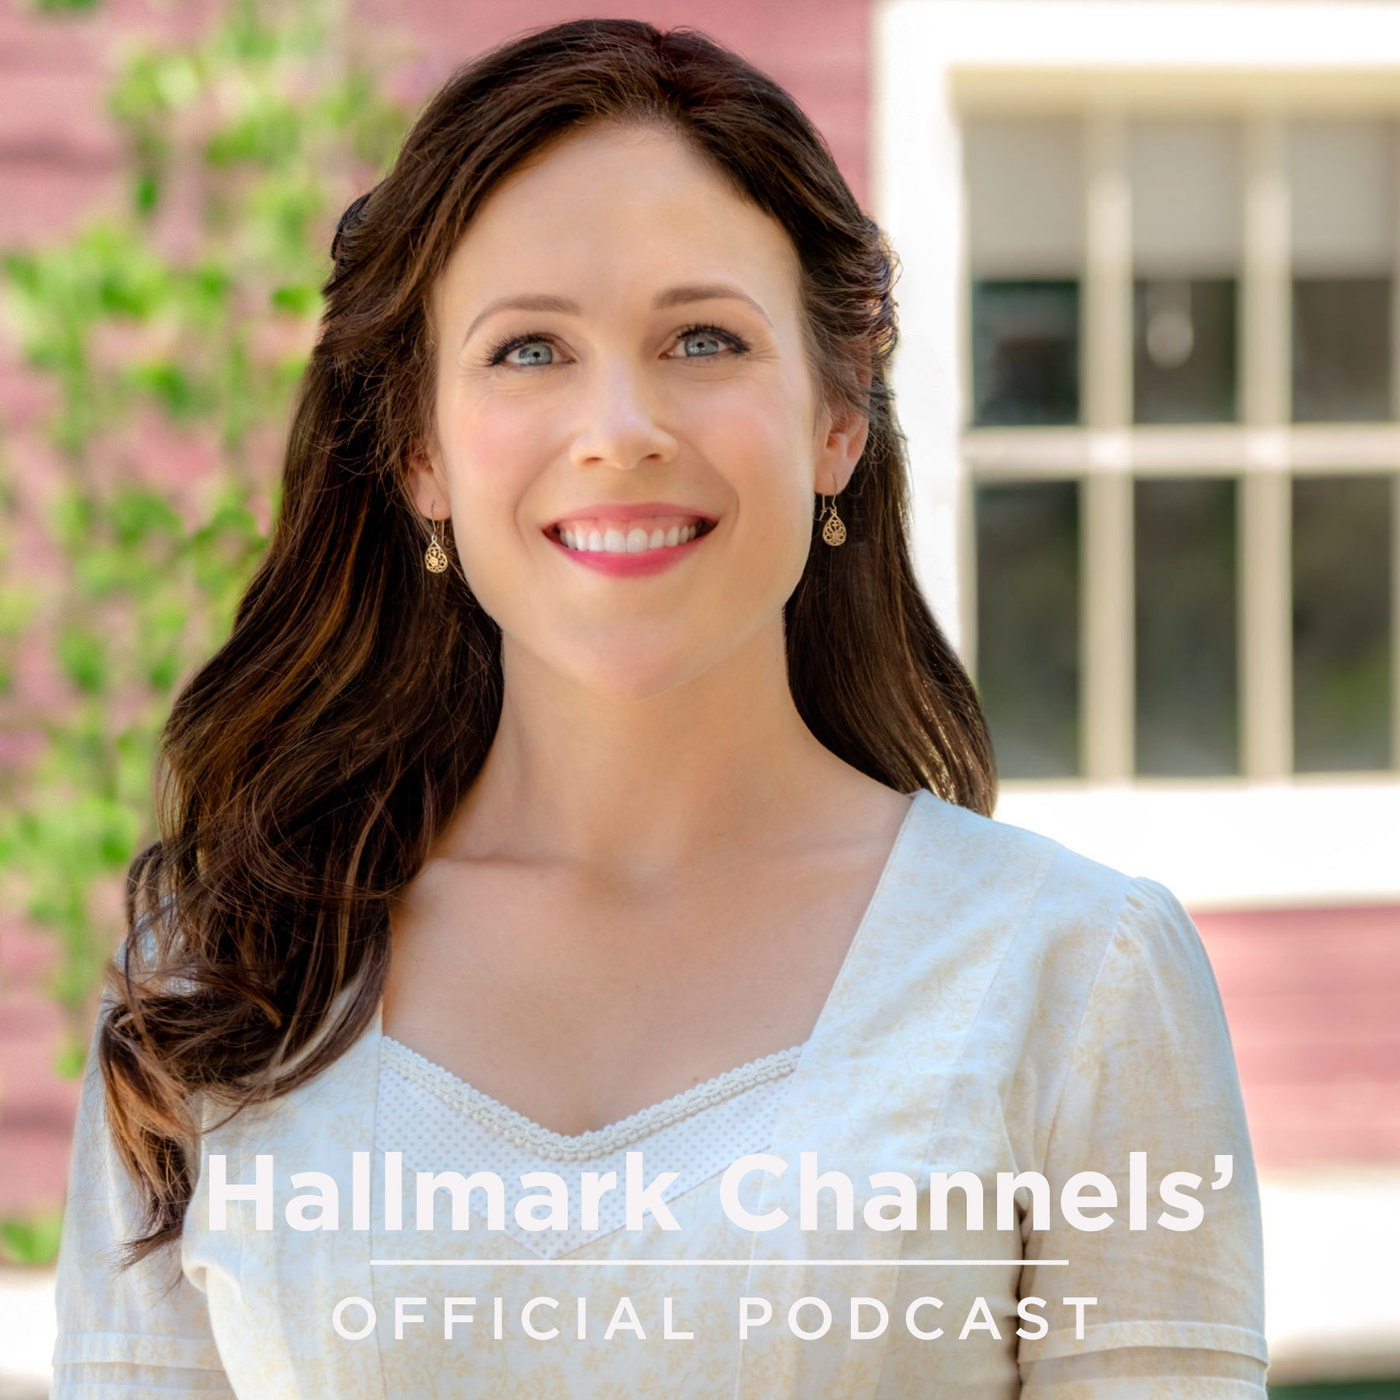 Hallmark Channels' Official Podcast: Valentine's Day